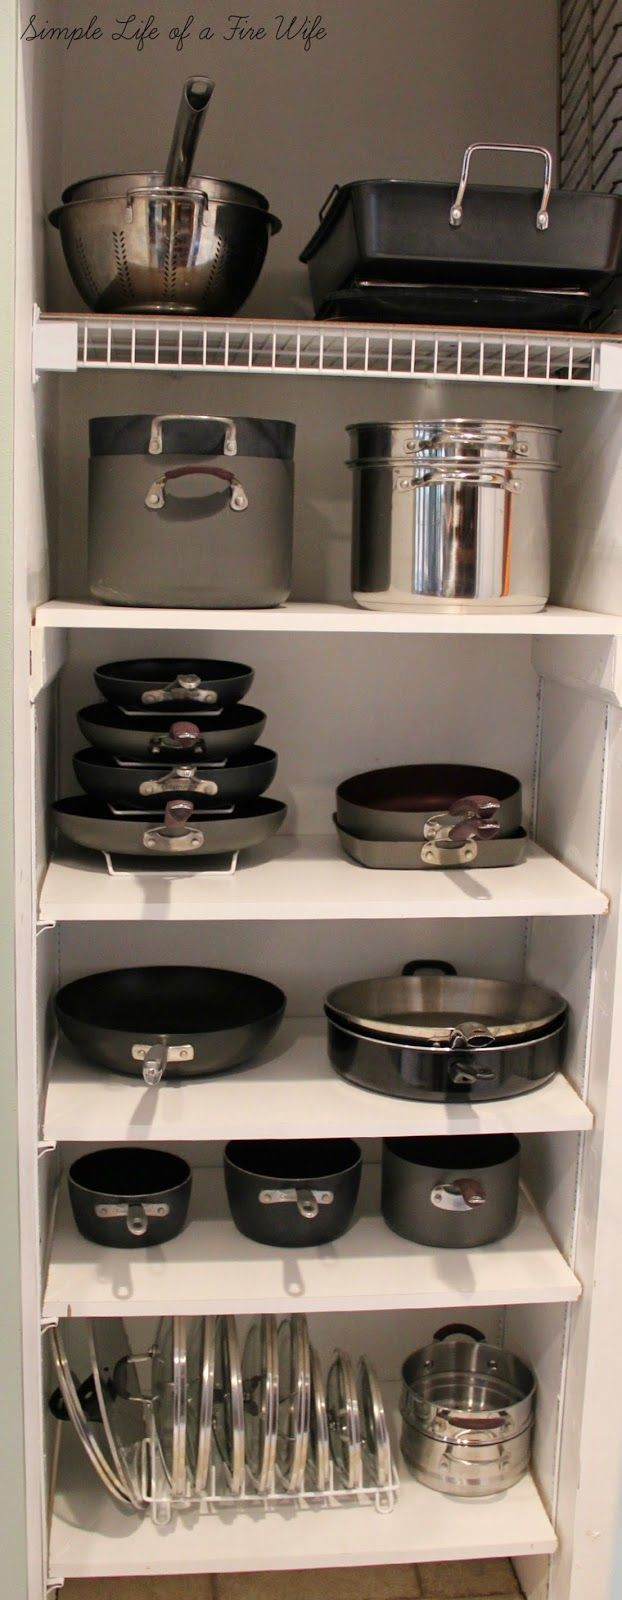 Cookware pantry cookware organization wwwsimplelifeofafirewifecom Cookware pantry